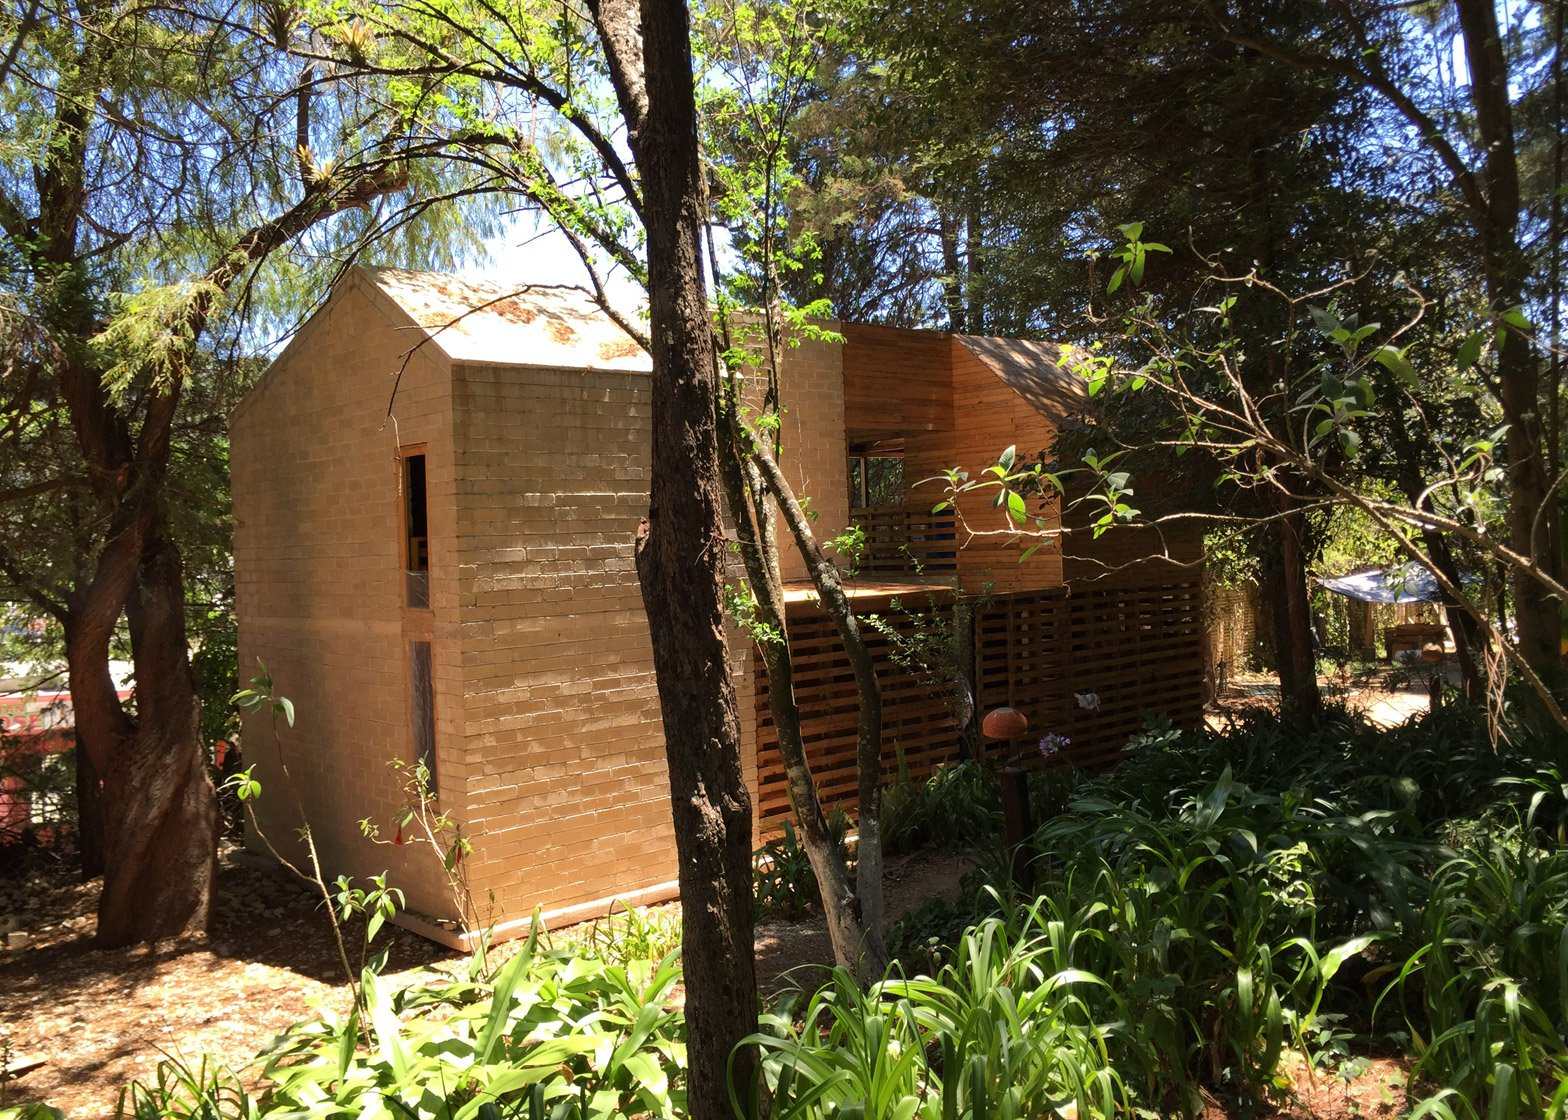 Mexico House by Tatiana Bilbao for Chicago Architecture Biennial 2015